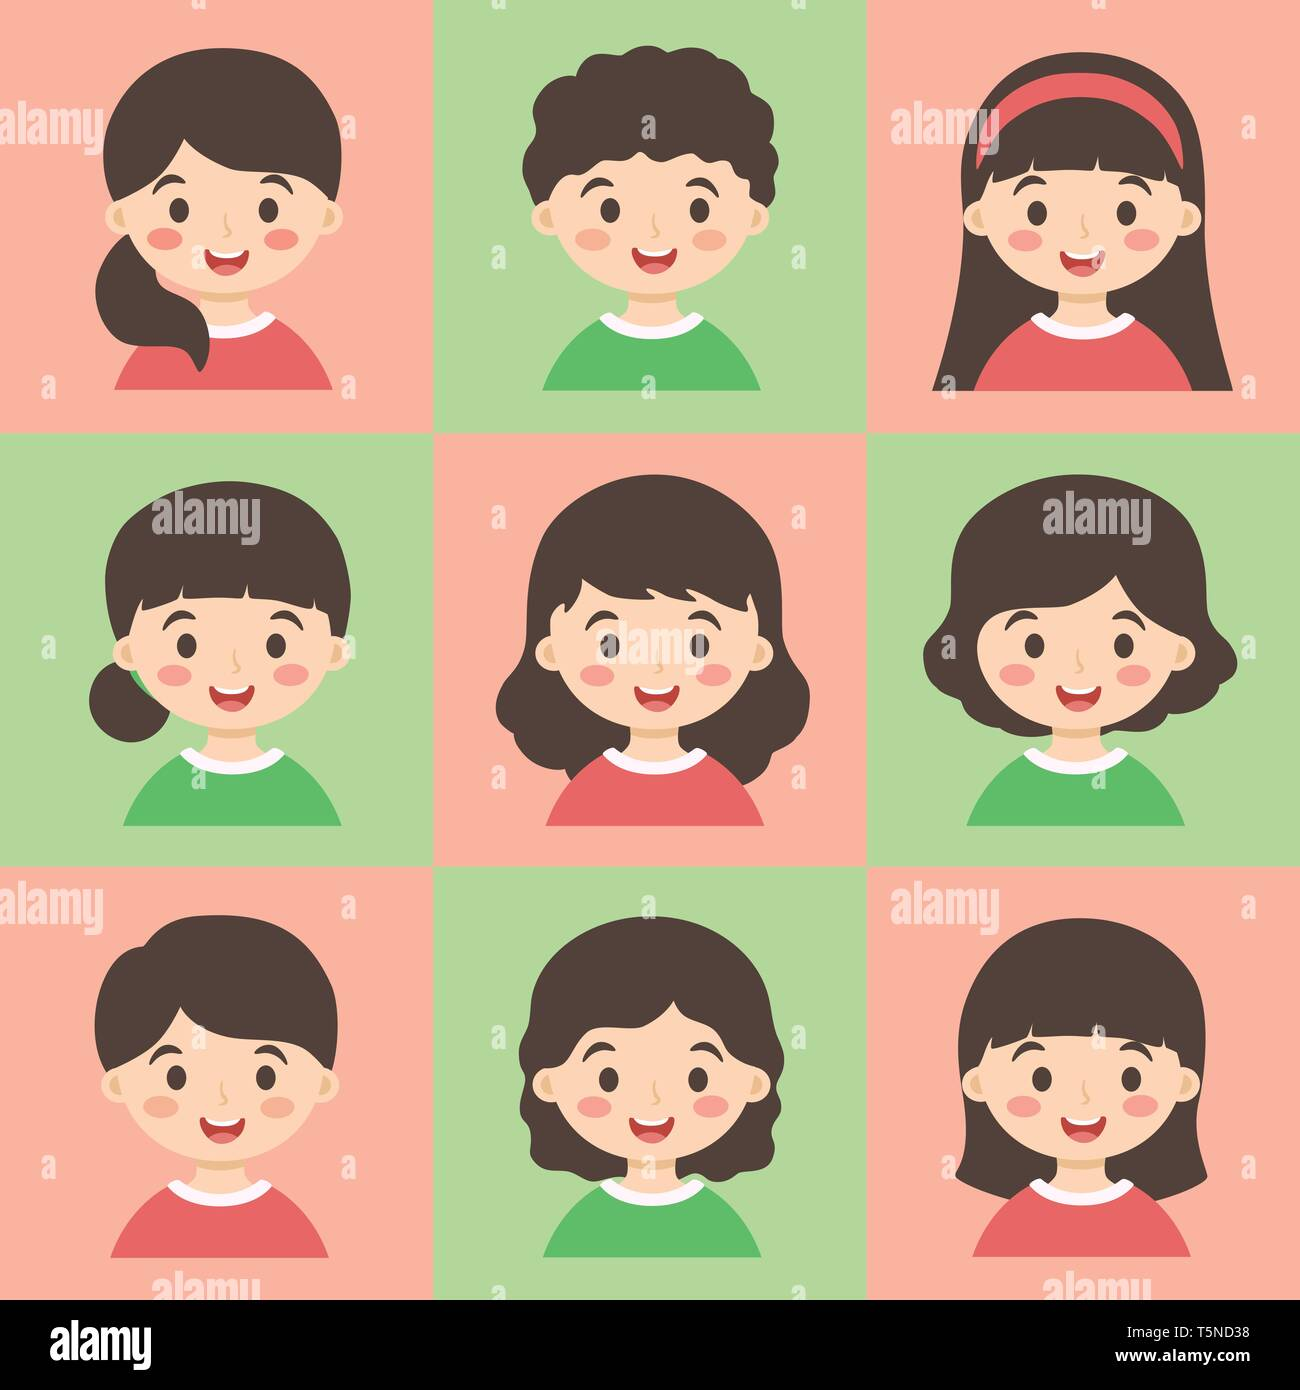 Cute Kids Face Avatar Cartoon Character With Different Hair